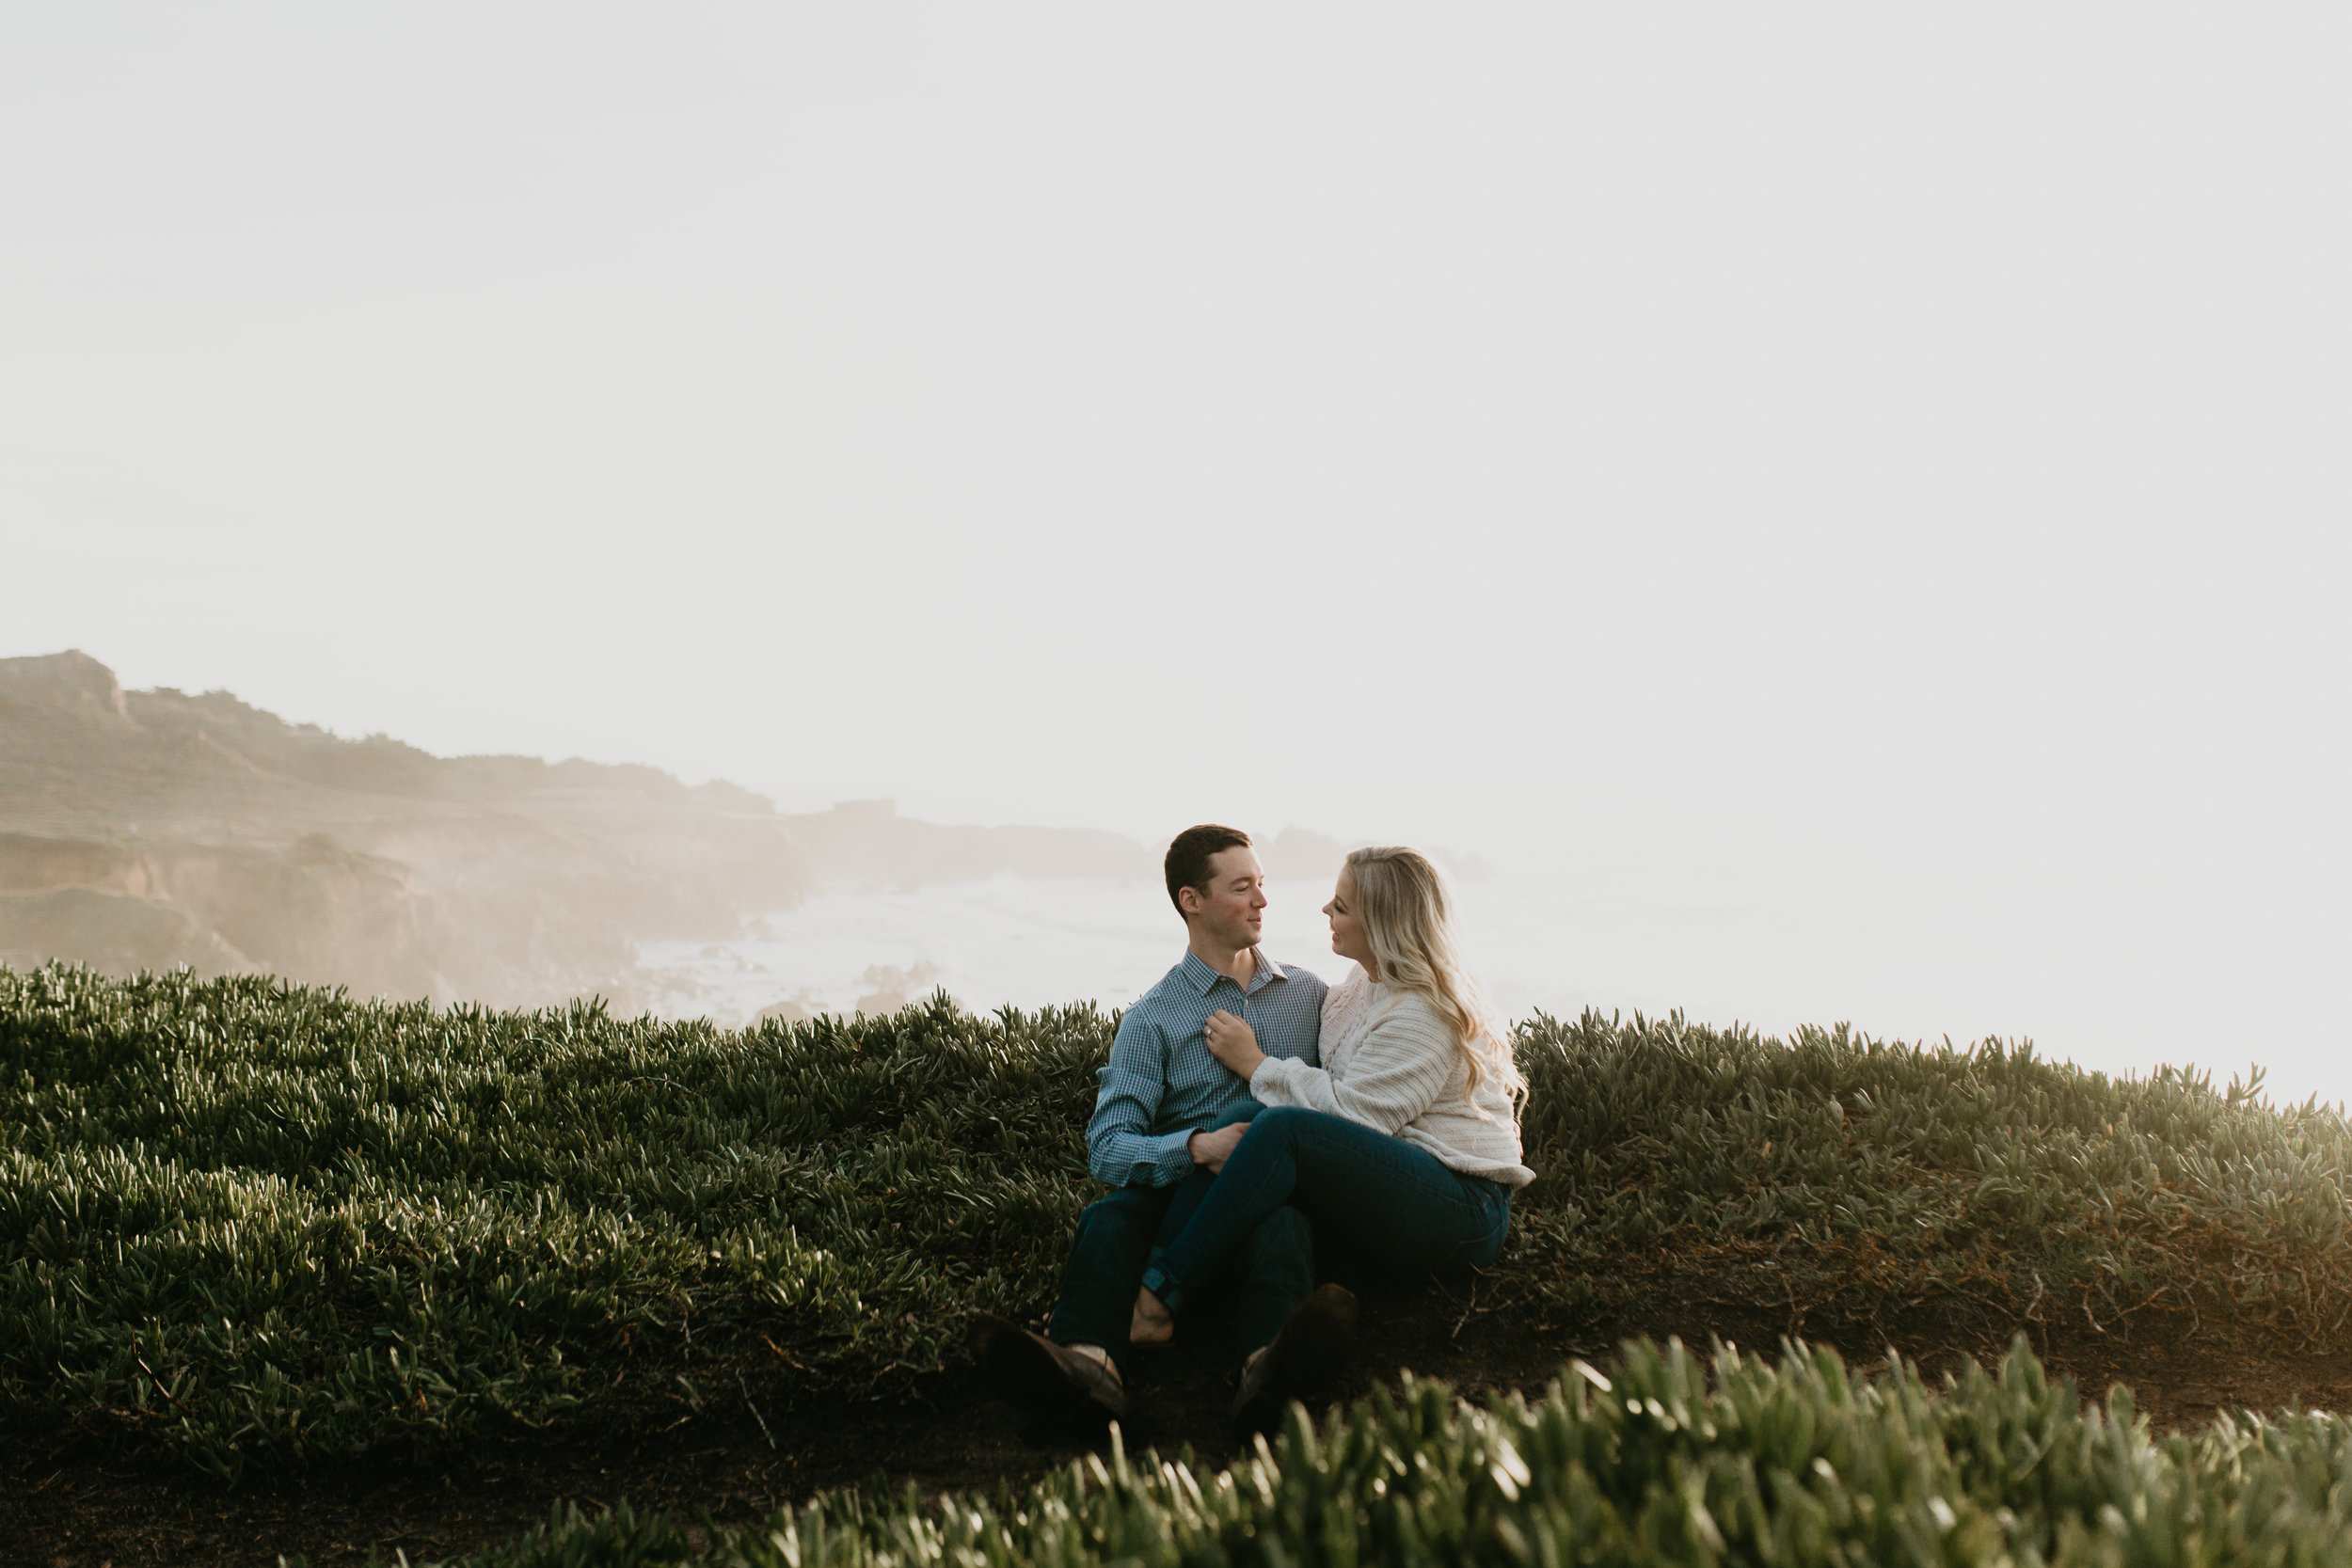 Nicole-Daacke-Photography-big-sur-garrapatta-state-park-adventurous-engagement-session-bixy-bridge-elopement-big-sur-wedding-photographer-monterey-elopement-photographer-california-golden-sunset-coast-photos-20.jpg